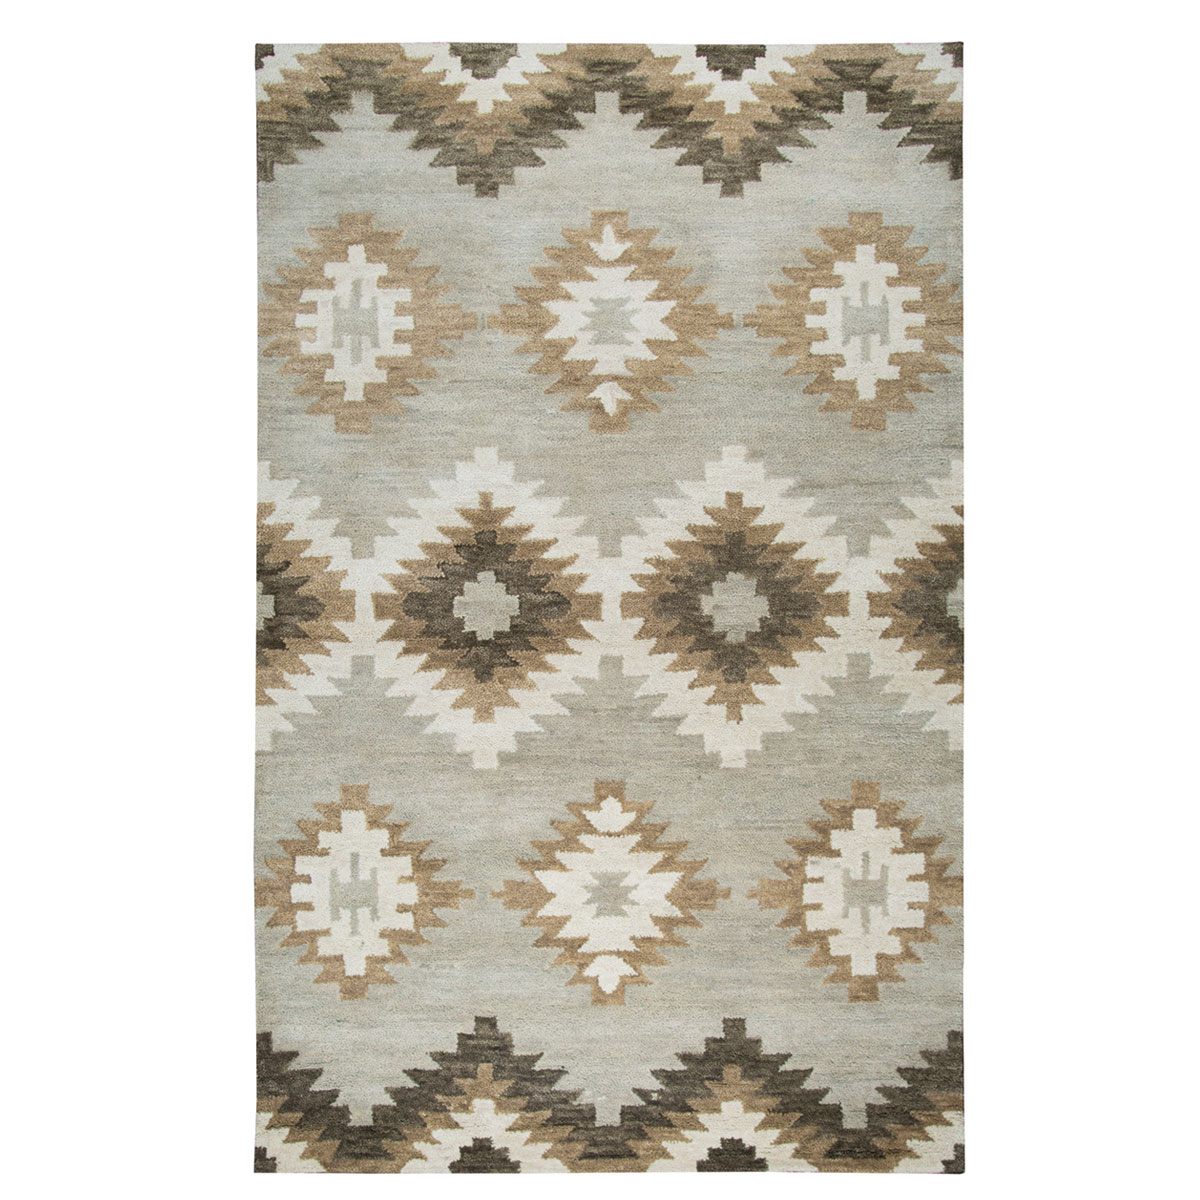 Painted Desert Gray and White Rug - 5 x 8